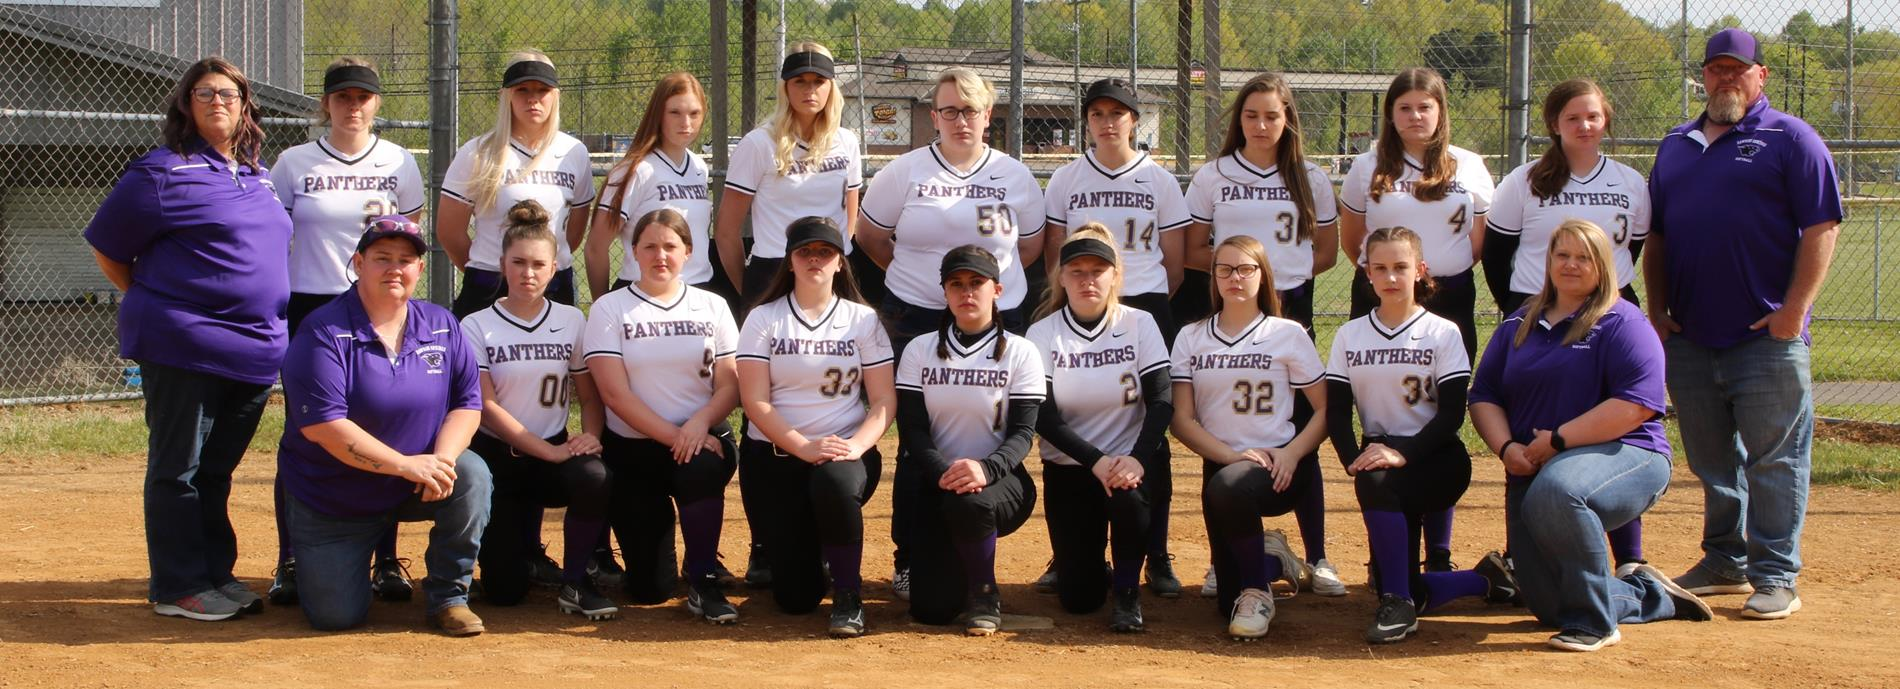 DSHS 2021 Softball Team